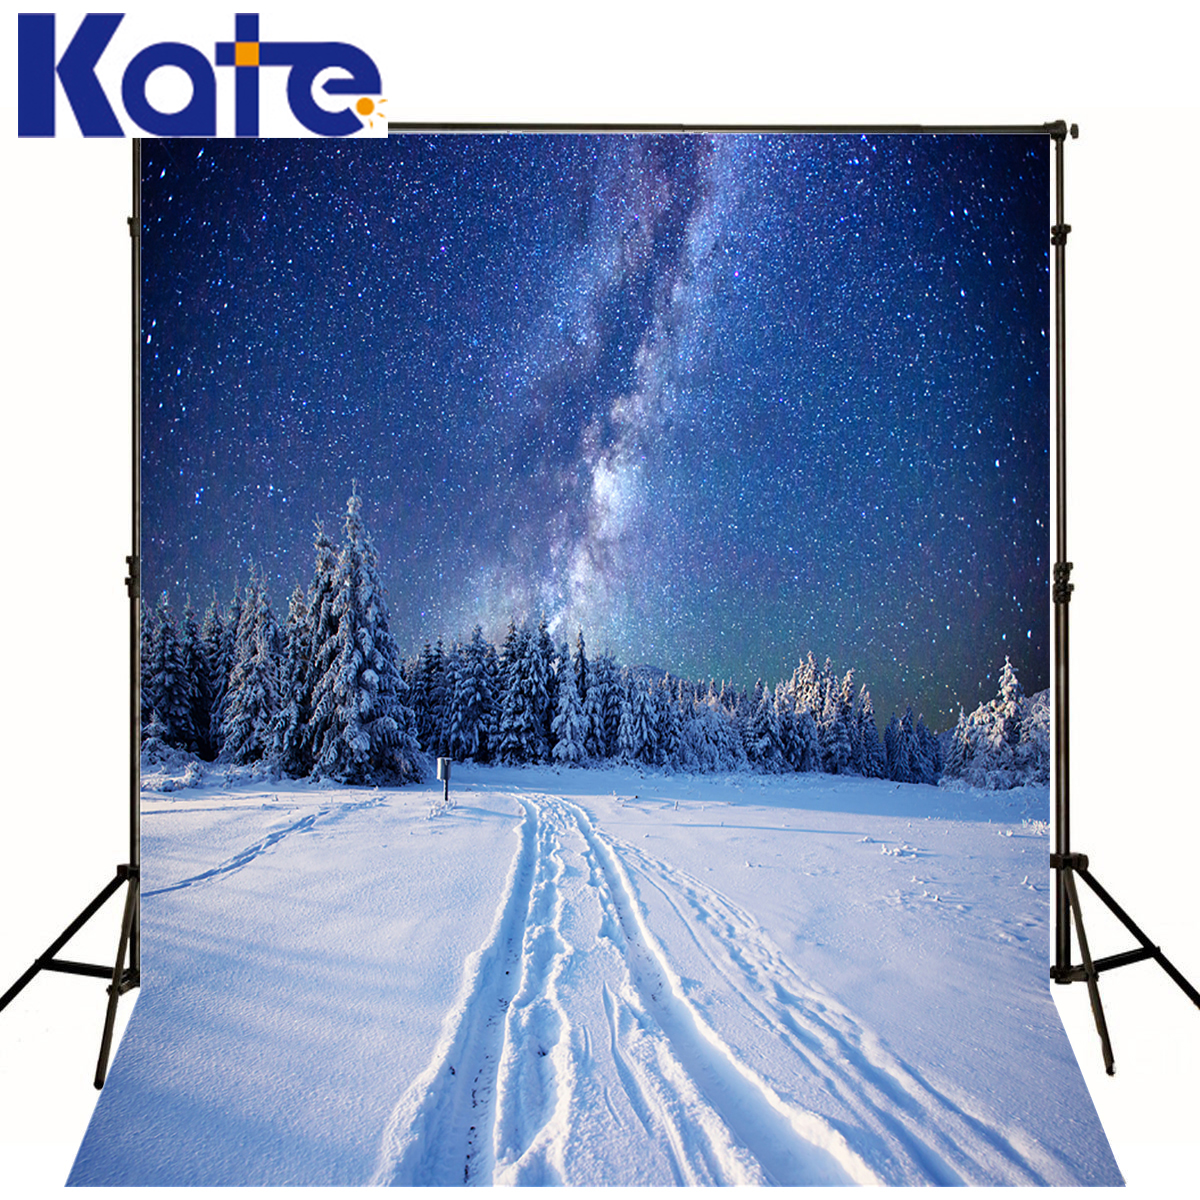 Papel De Parede Kate Digital Printing Photography Backdrop Snow Blue Sky Cedar Studio Camera Kate Background Backdrop blue sky чаша северный олень